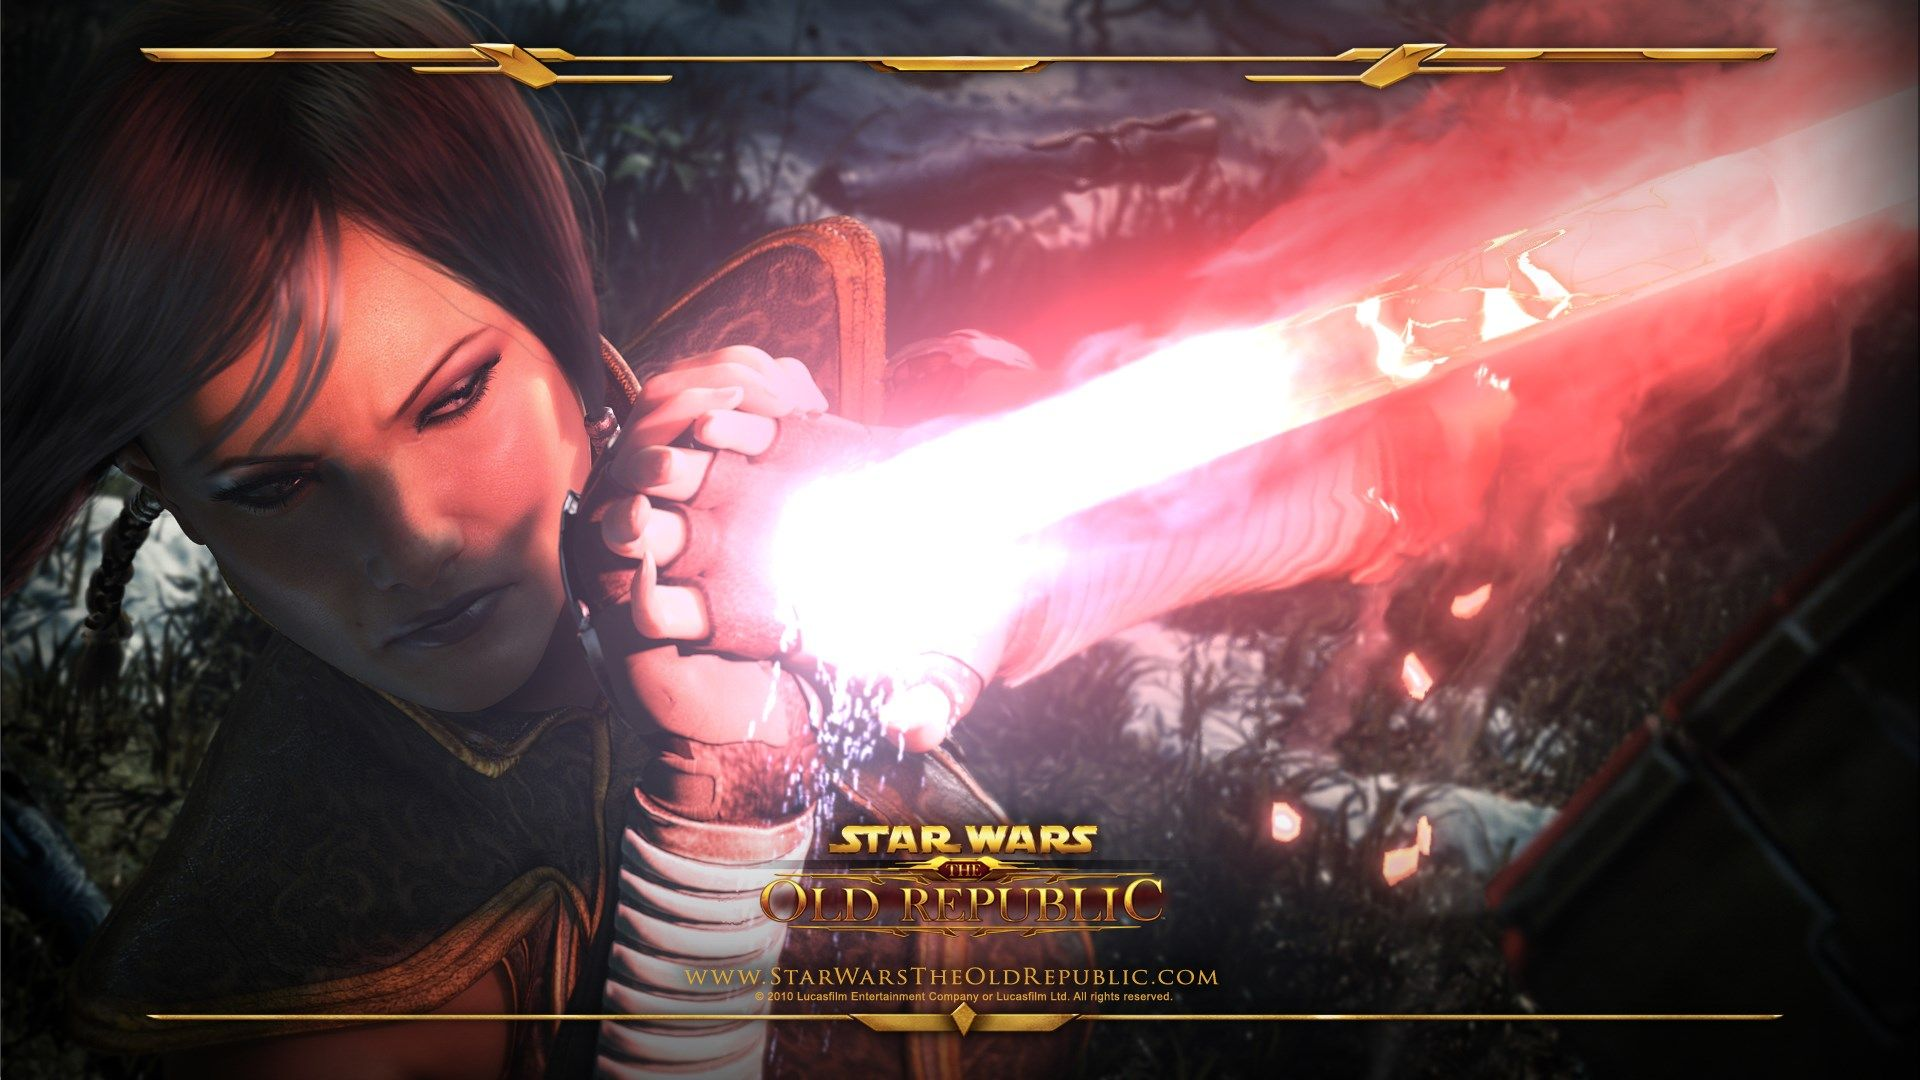 Free Star Wars Knights Of The Old Republic Wallpaper Jaylee Hardman 1920x1080 Star Wars The Old Star Wars Games The Old Republic